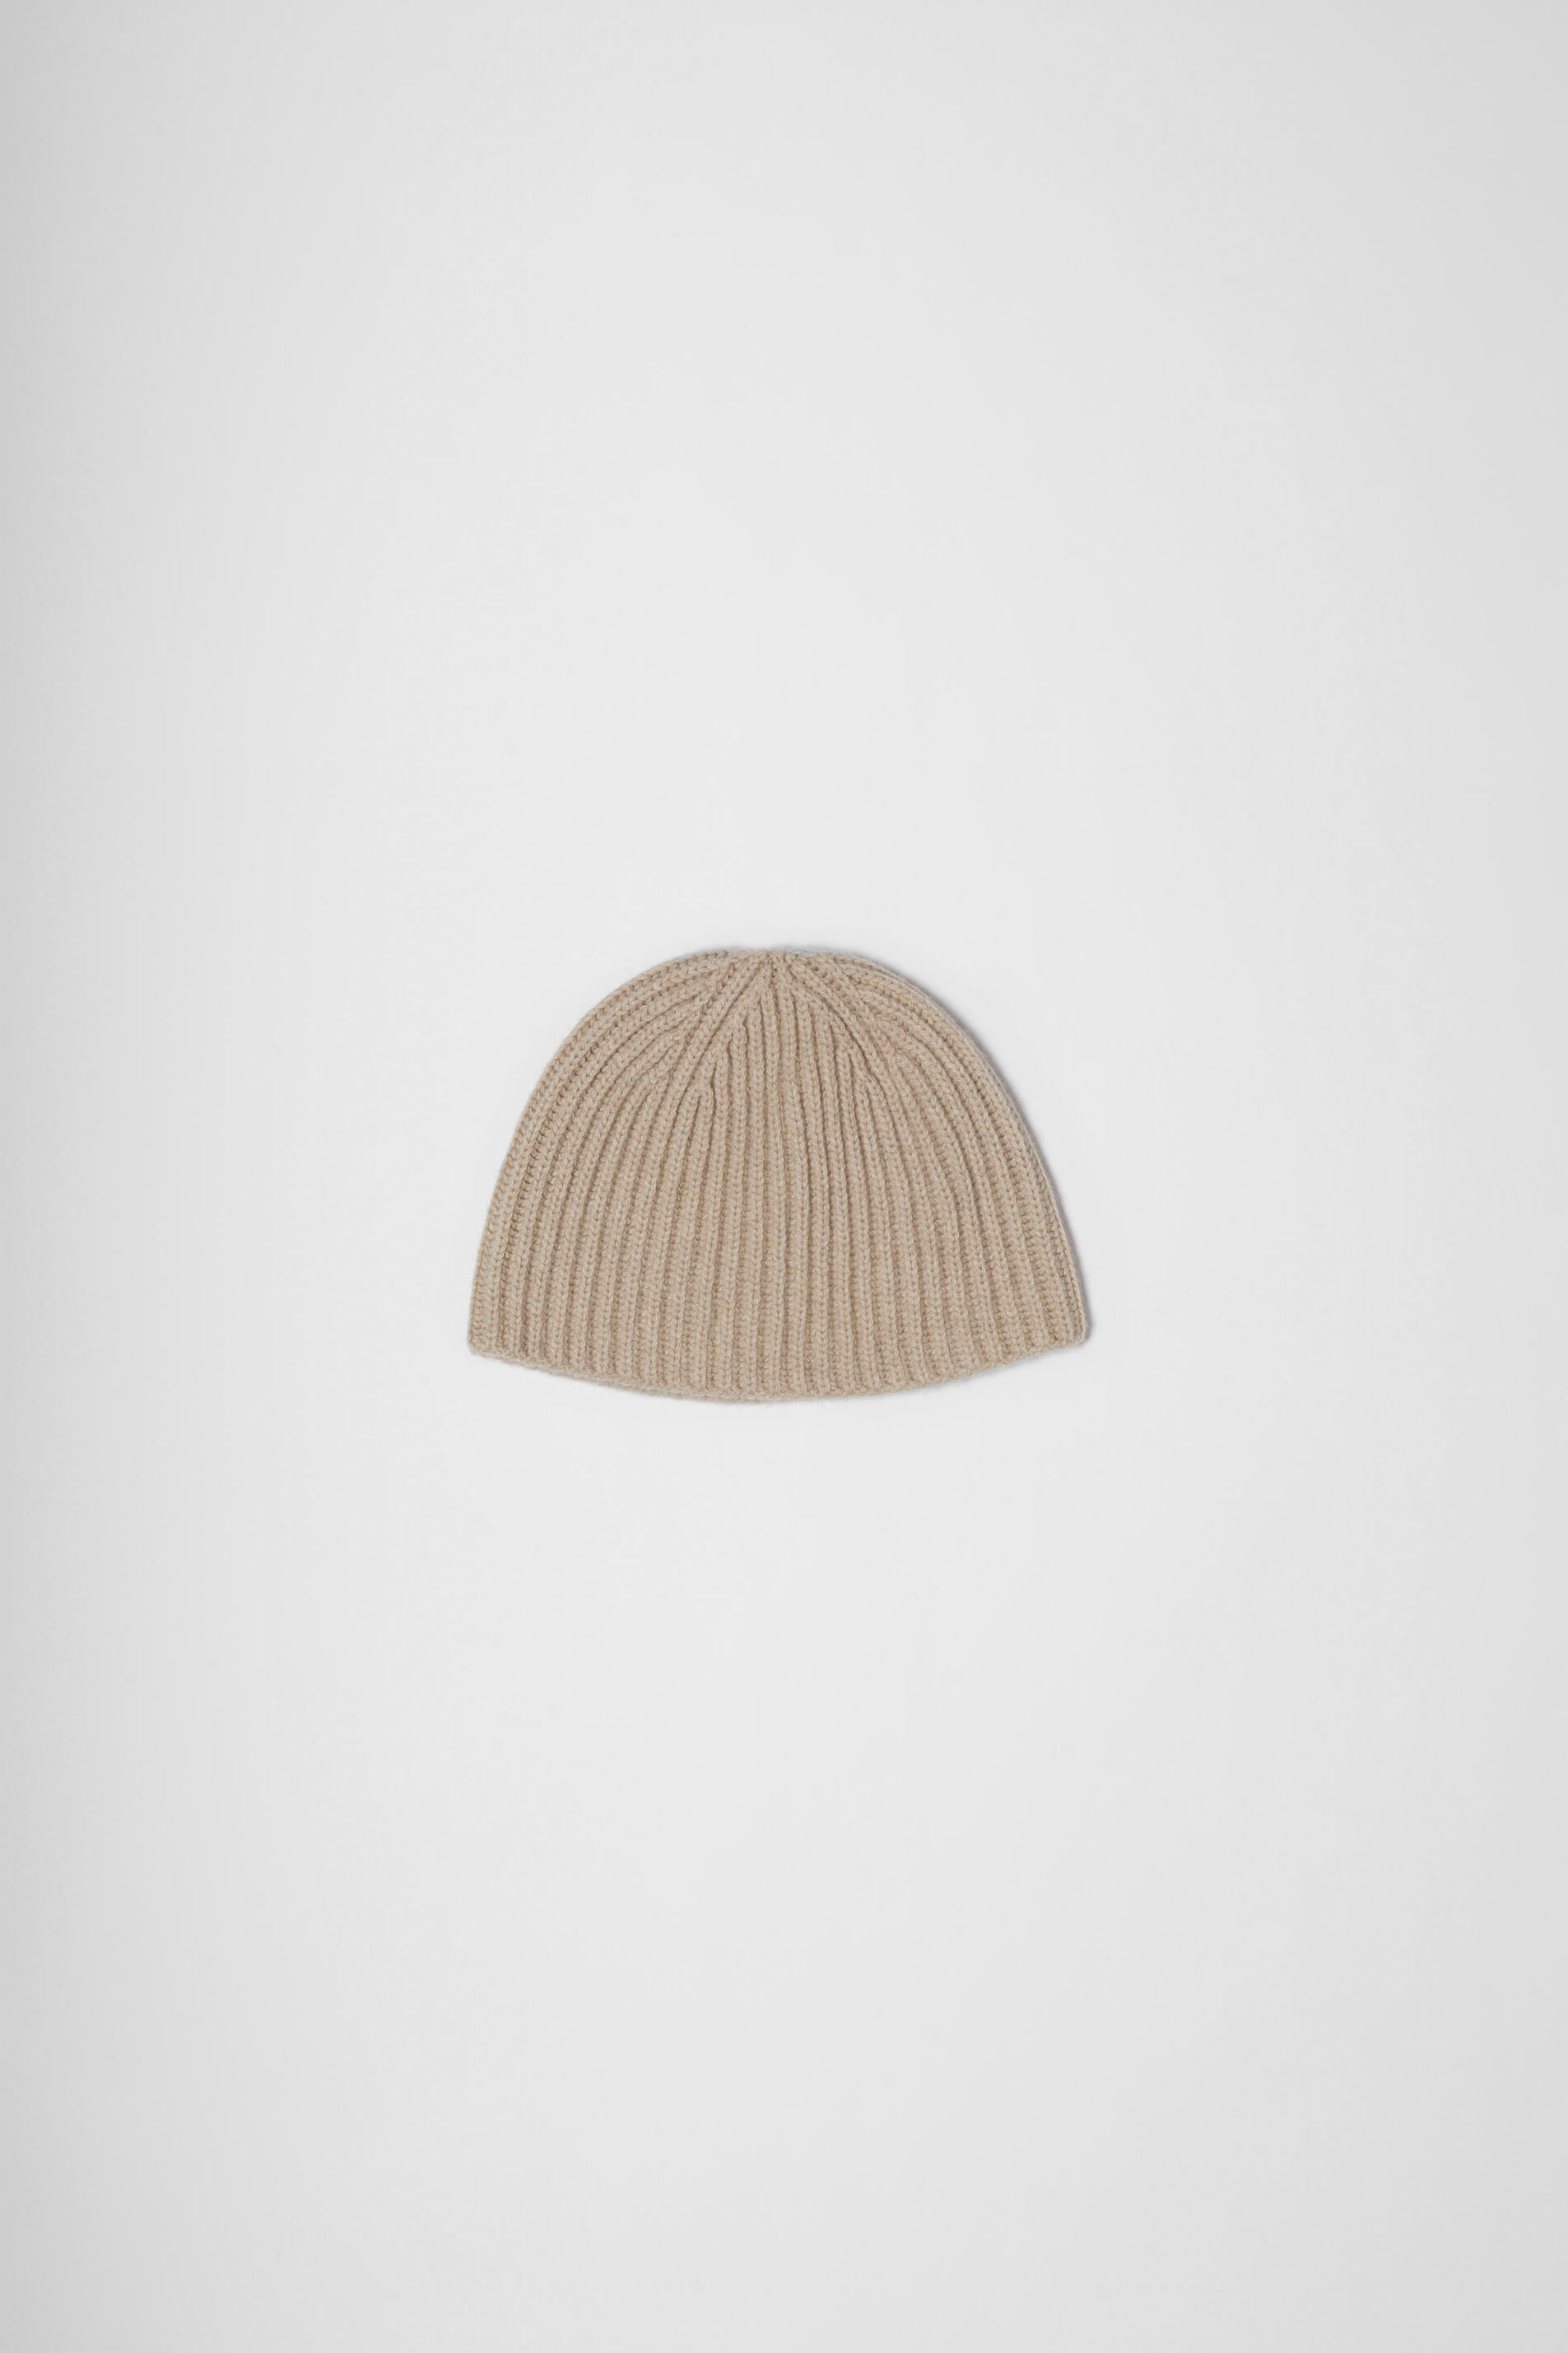 Hat, pastel brown, large